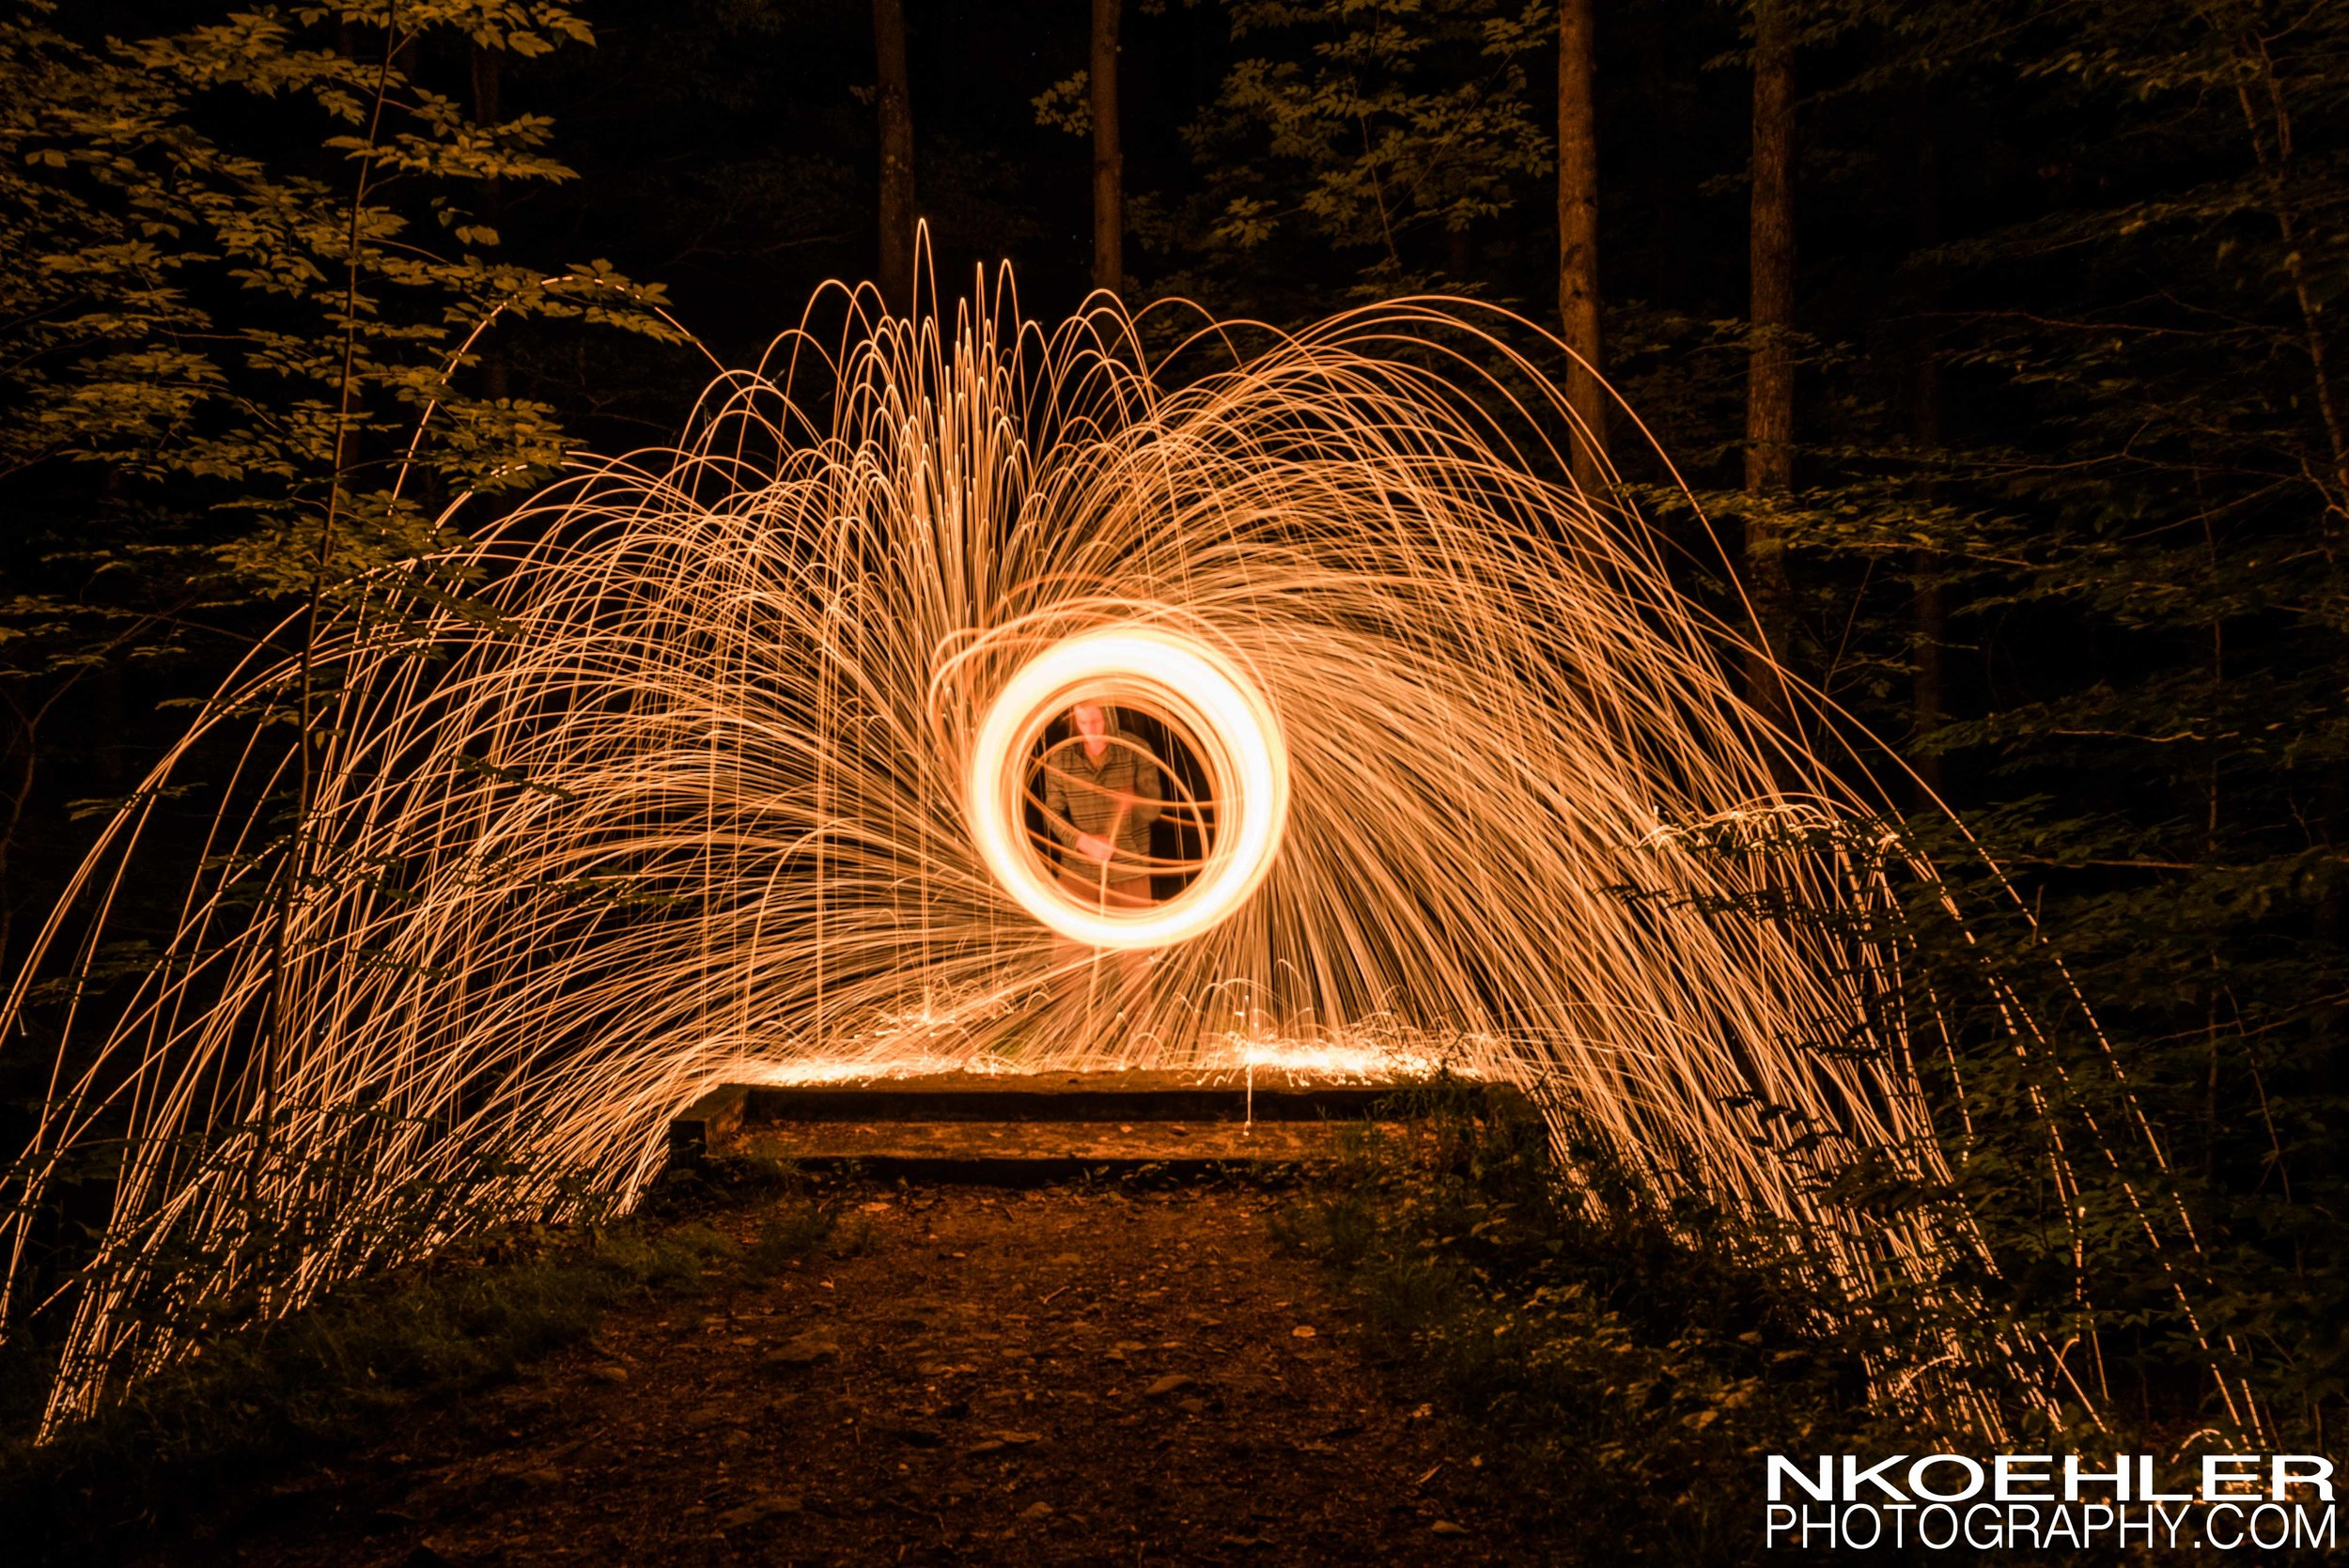 Played with Steel Wool again. Got chased out of the woods by Coyotes.